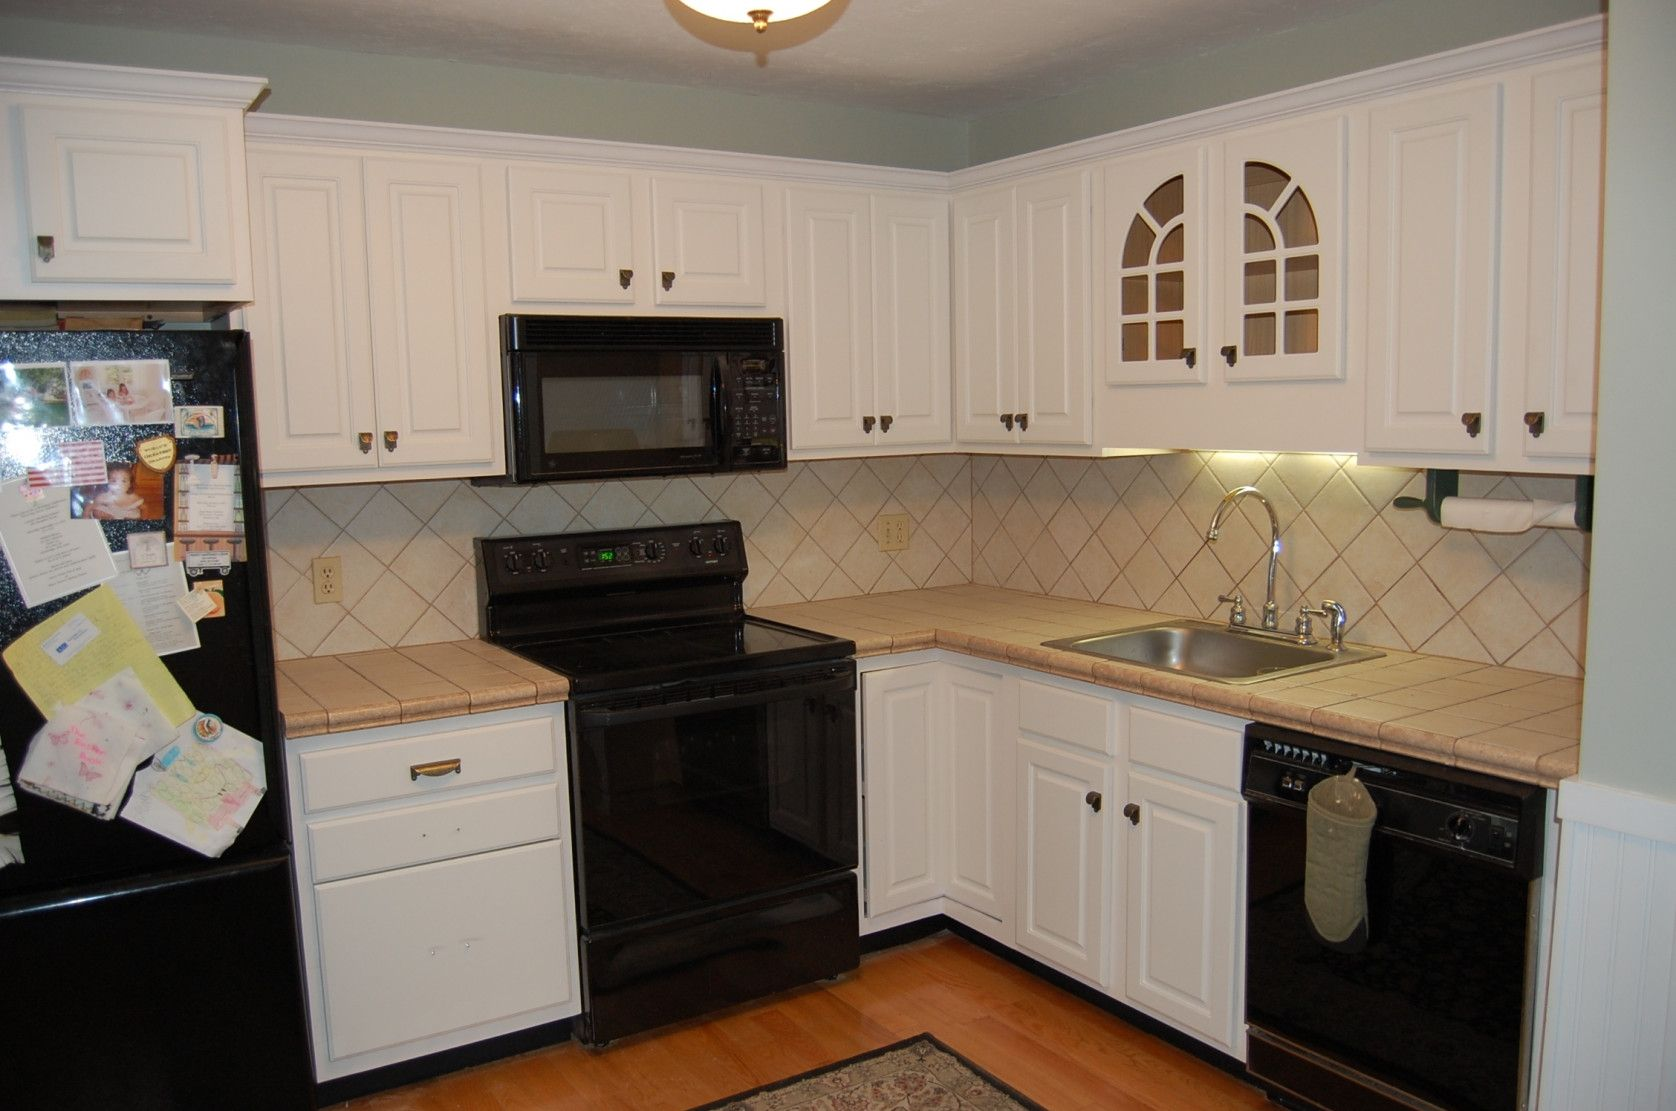 Ideas For Unique Kitchen Cabinet Refacing on ideas for kitchen cabinet storage, ideas for sunrooms, ideas for shutters, ideas for decks, ideas for home remodeling, ideas for pantry cabinets, ideas for outdoor kitchens, ideas for oak cabinets, ideas for roofing, ideas for rta cabinets, ideas for fireplace refacing, ideas for cabinet handles, ideas for doors, ideas for custom cabinets,